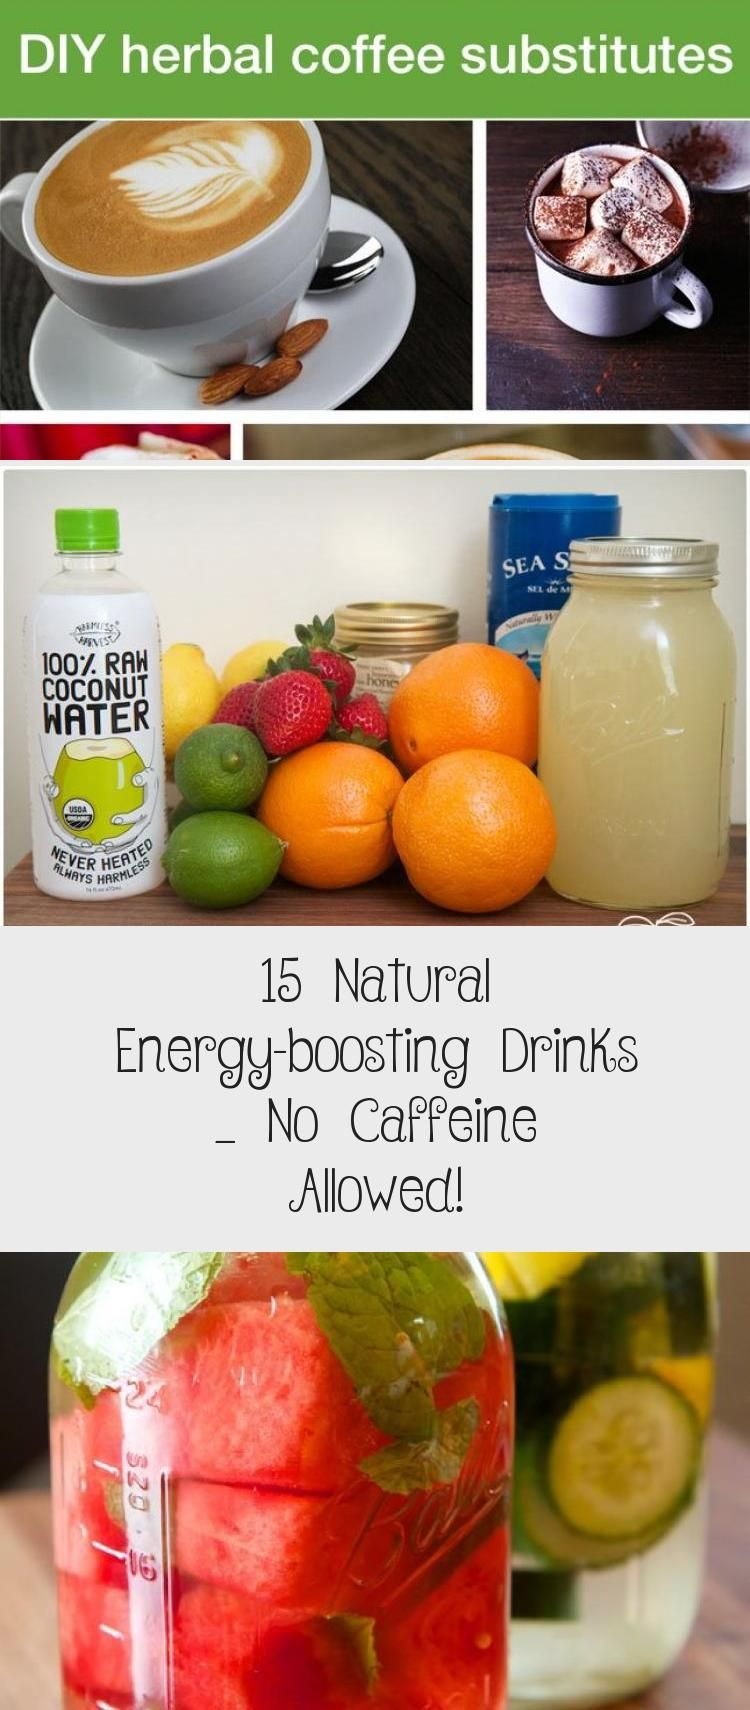 12 Natural Energy Boosting Drinks No Caffeine Allowed What If We Give Up The Fleeting Artificial En In 2020 Energy Smoothies Healthy Drinks Healthy Drinks Detox